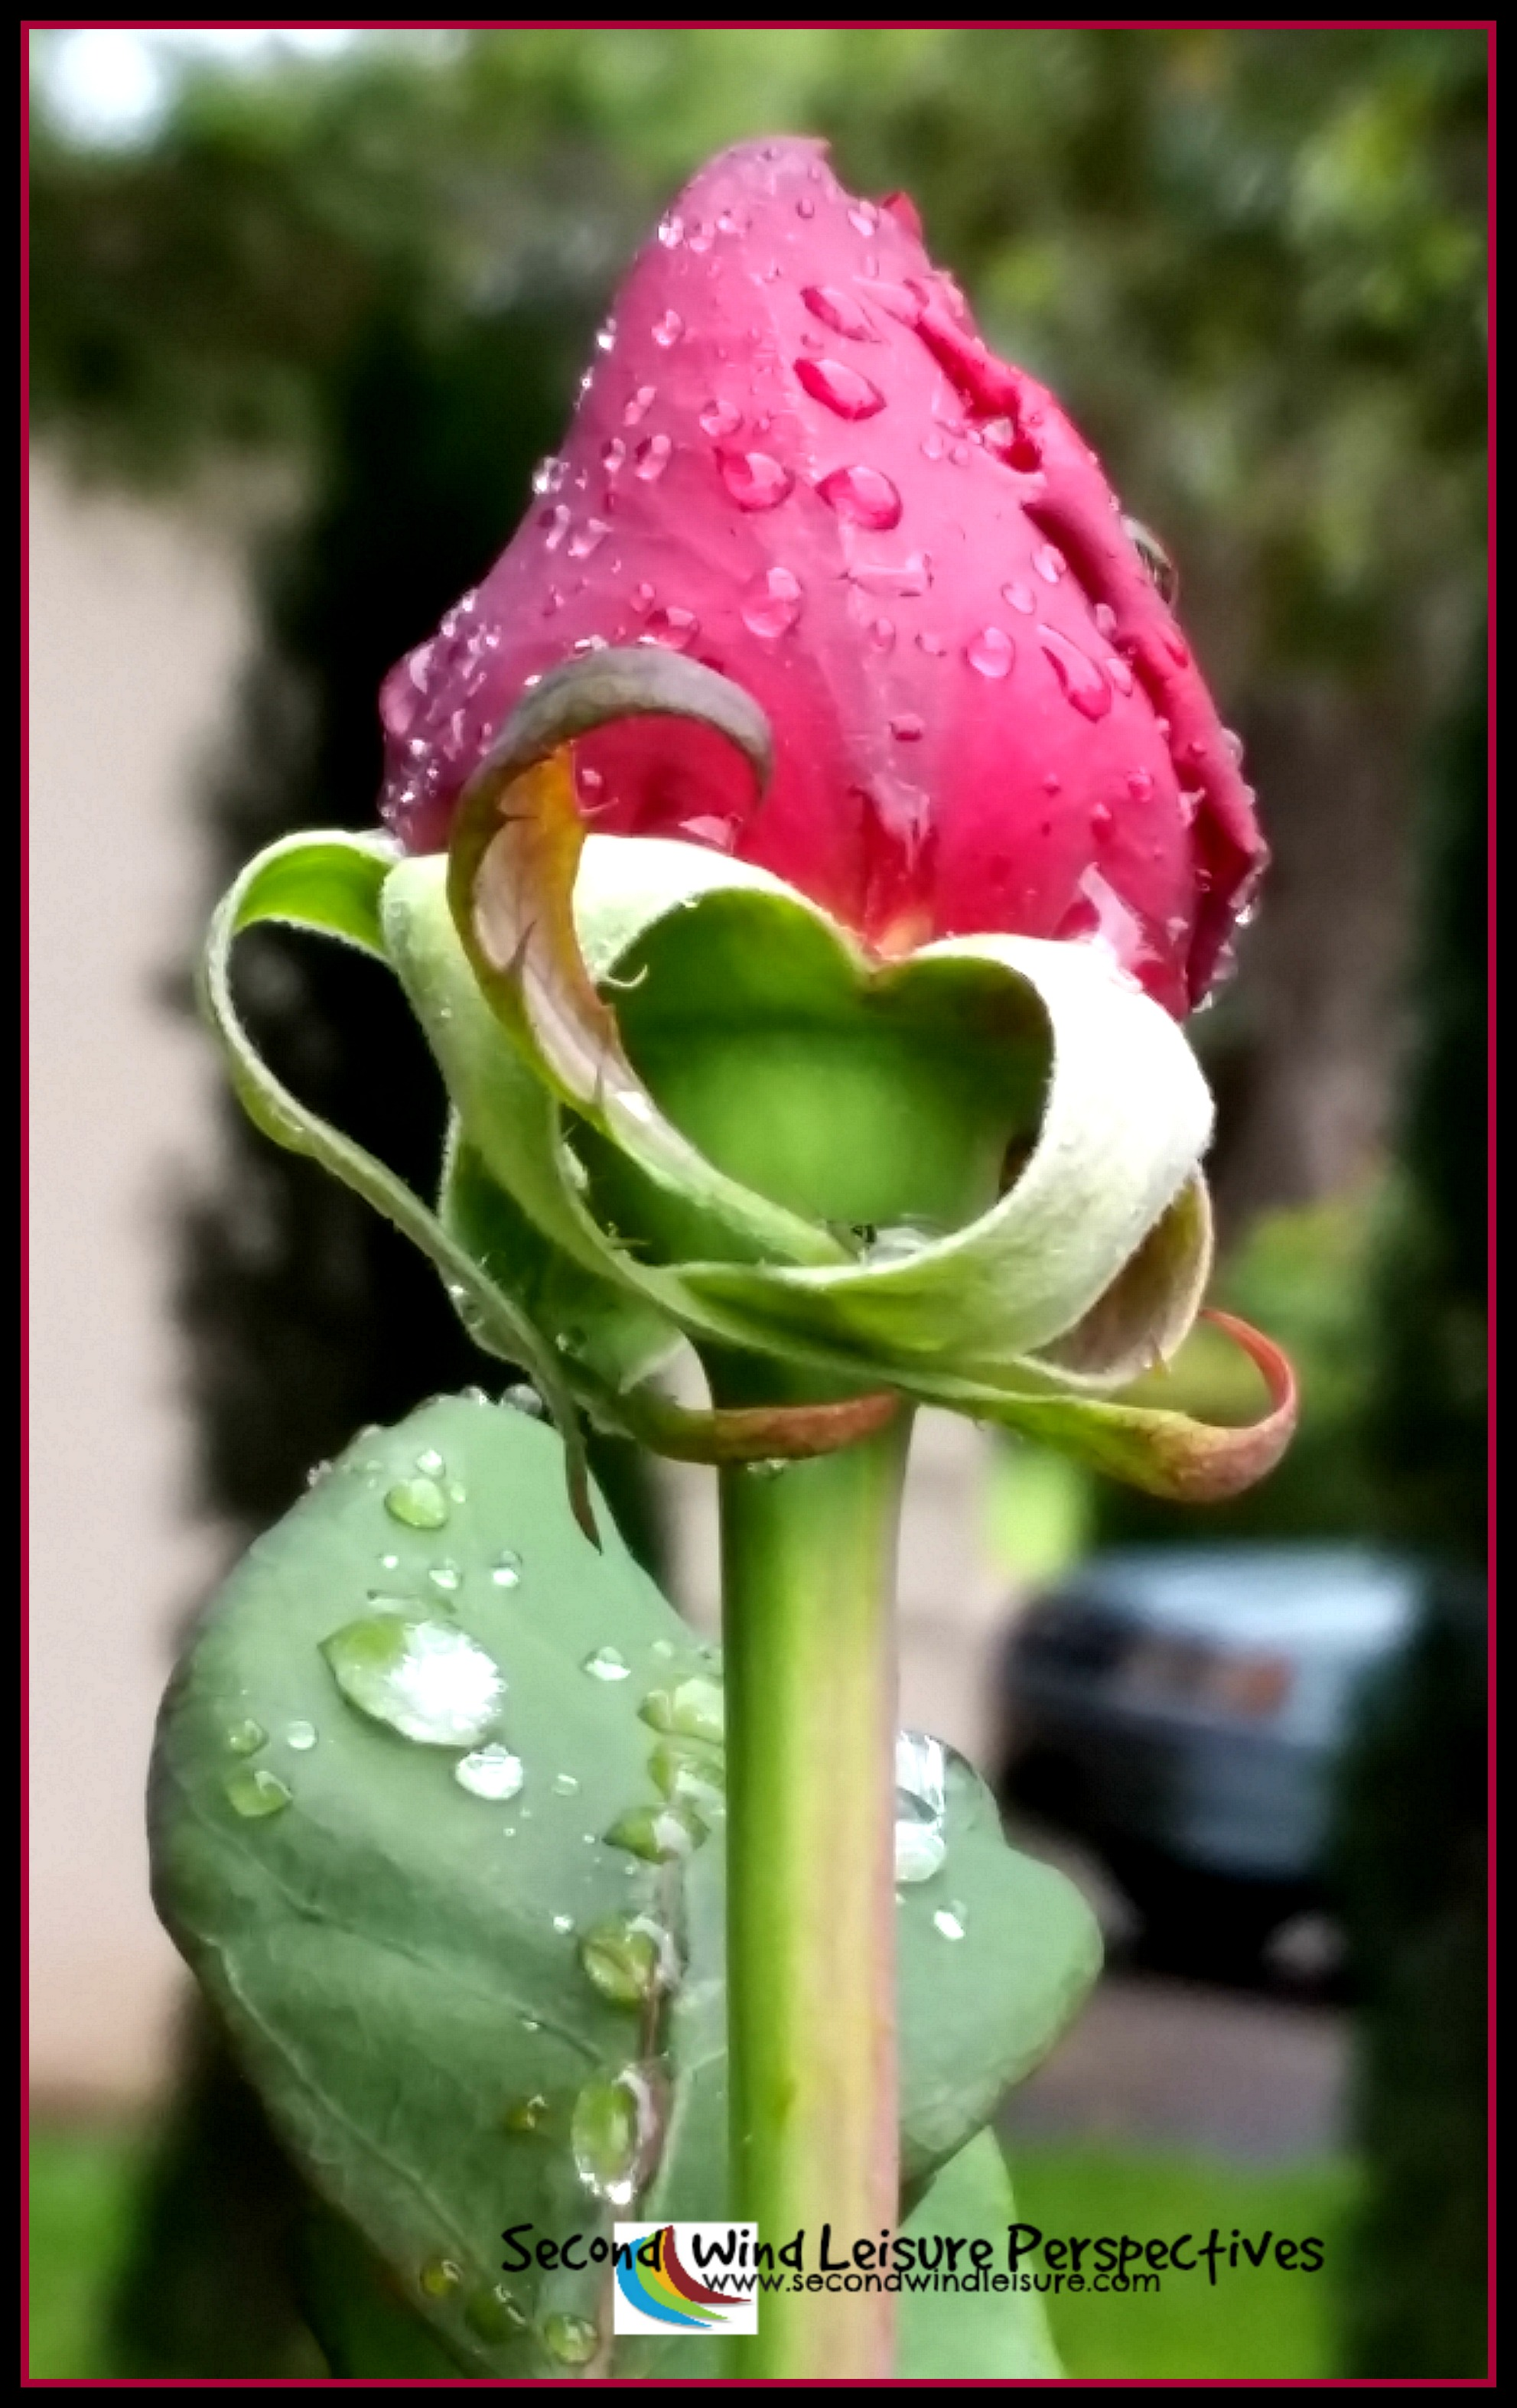 Atop Raindrops On Roses Second Wind Leisure Perspectives